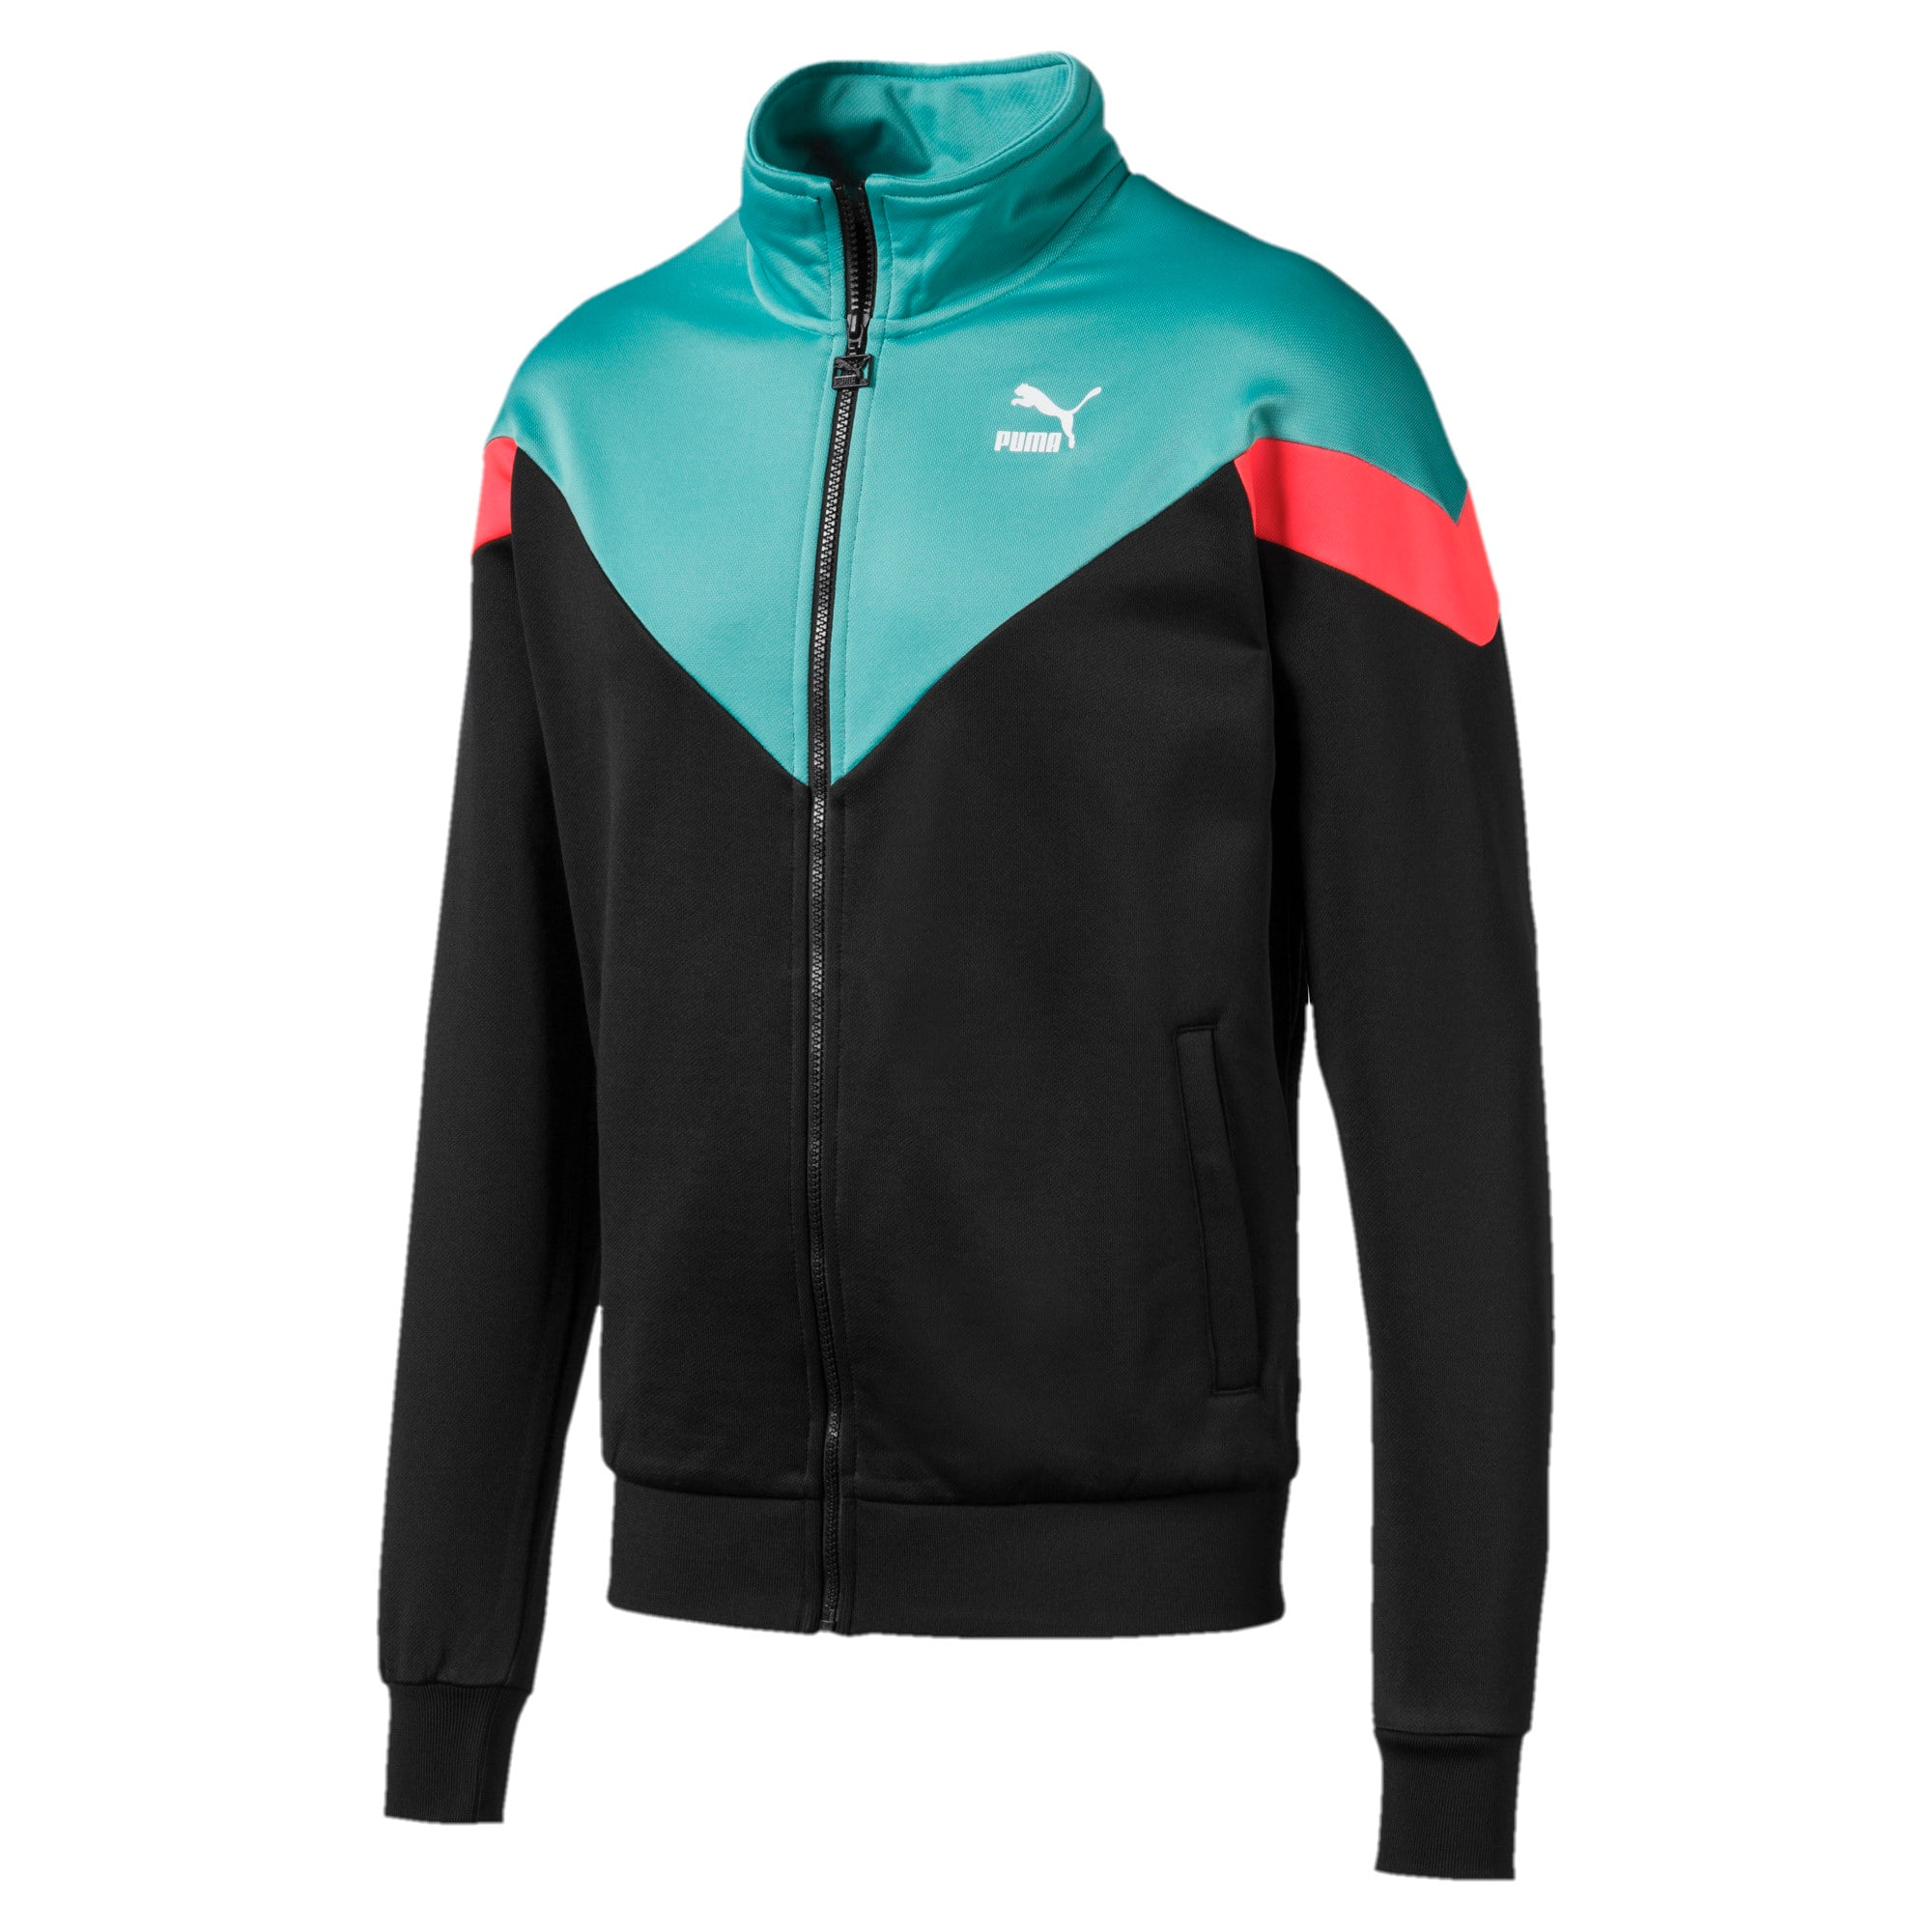 Thumbnail 1 of Iconic MCS Men's Track Jacket, Puma Black, medium